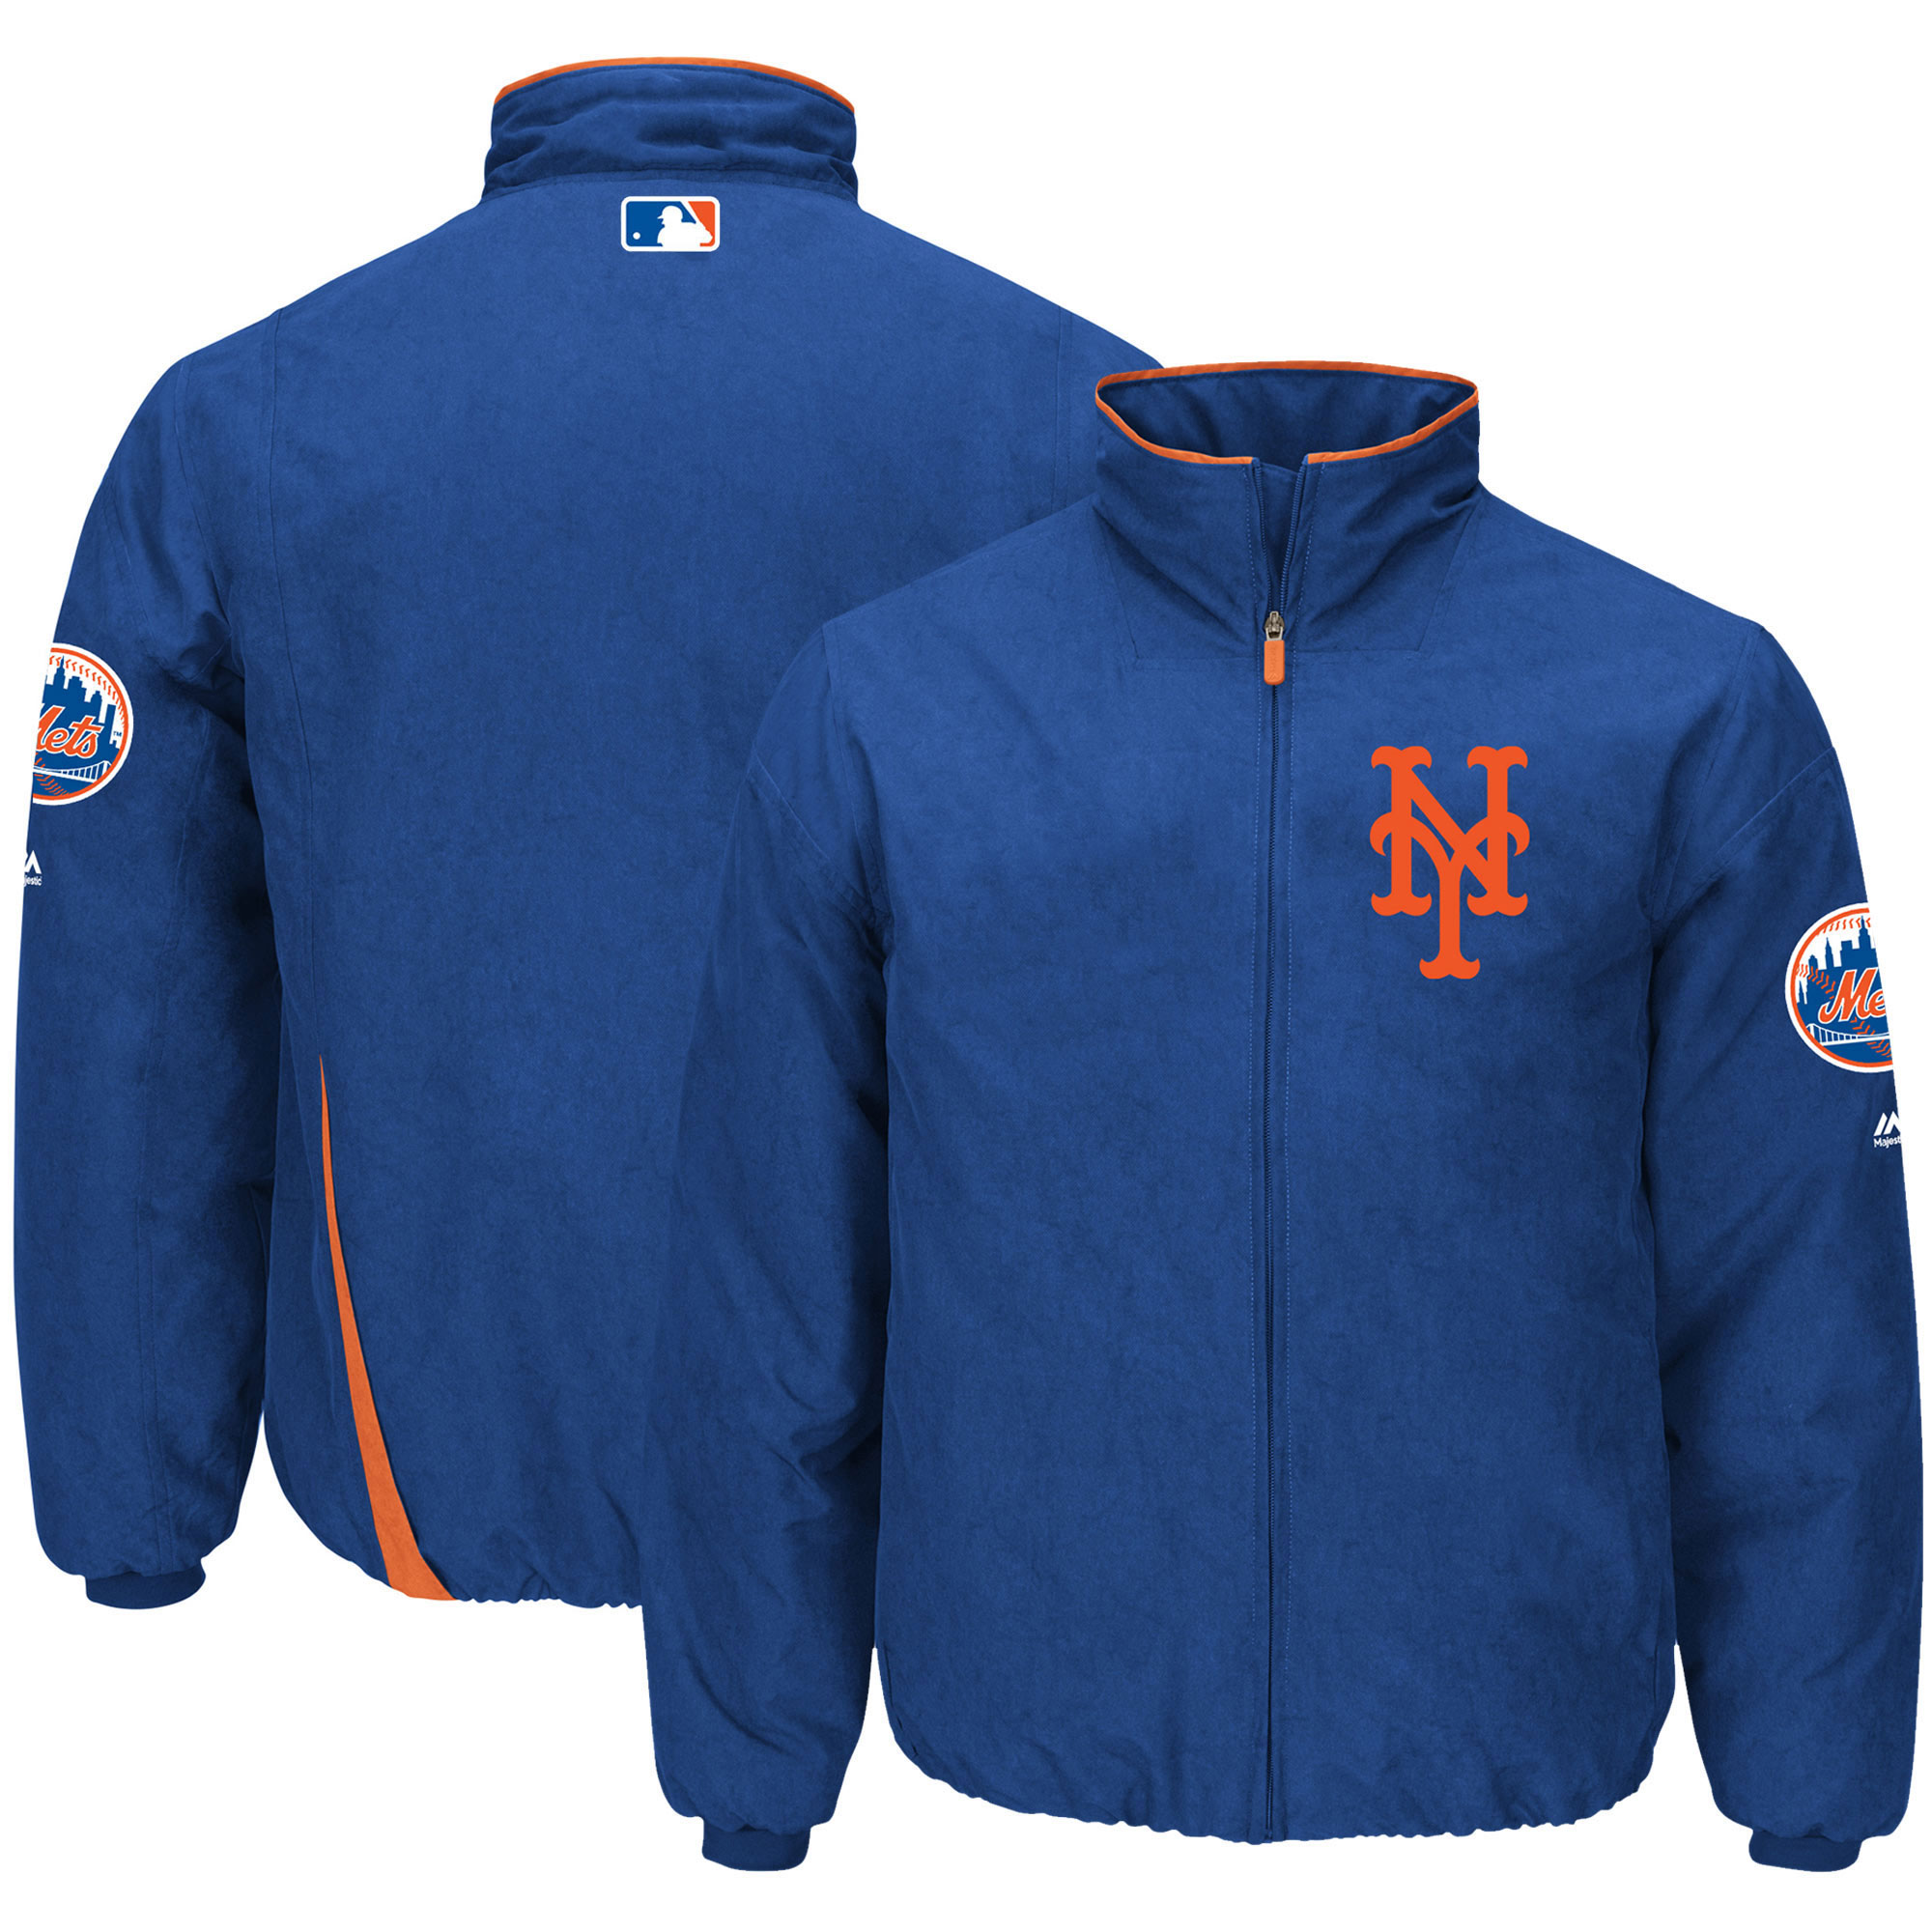 Men's Majestic Royal New York Mets On-Field Therma Base Thermal Full-Zip Jacket